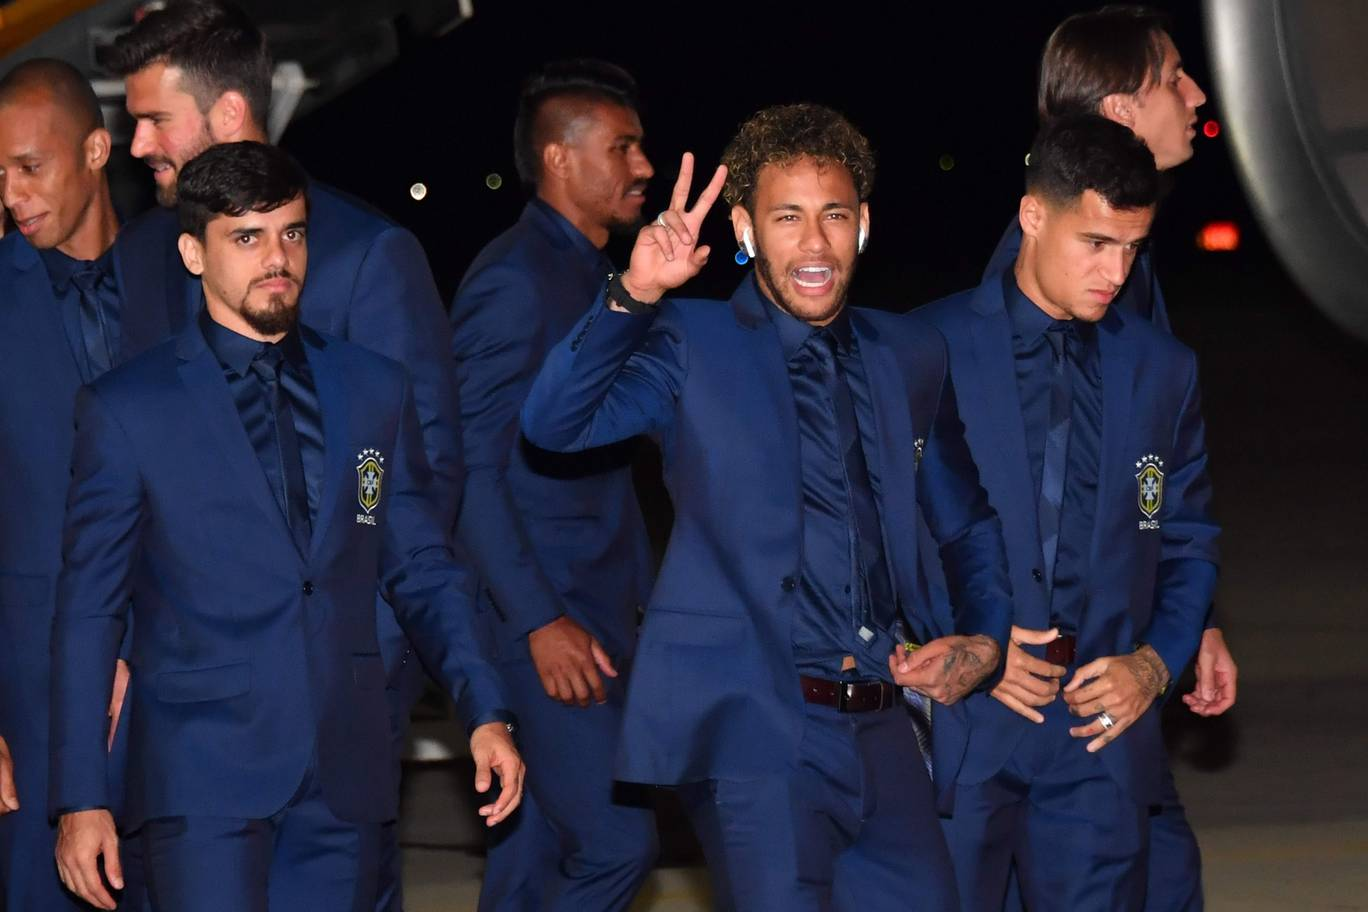 Brazils Fagner Neymar and Philippe Coutinho and the rest of the national team descend form the plan upon landing at Sochi airport in Russia